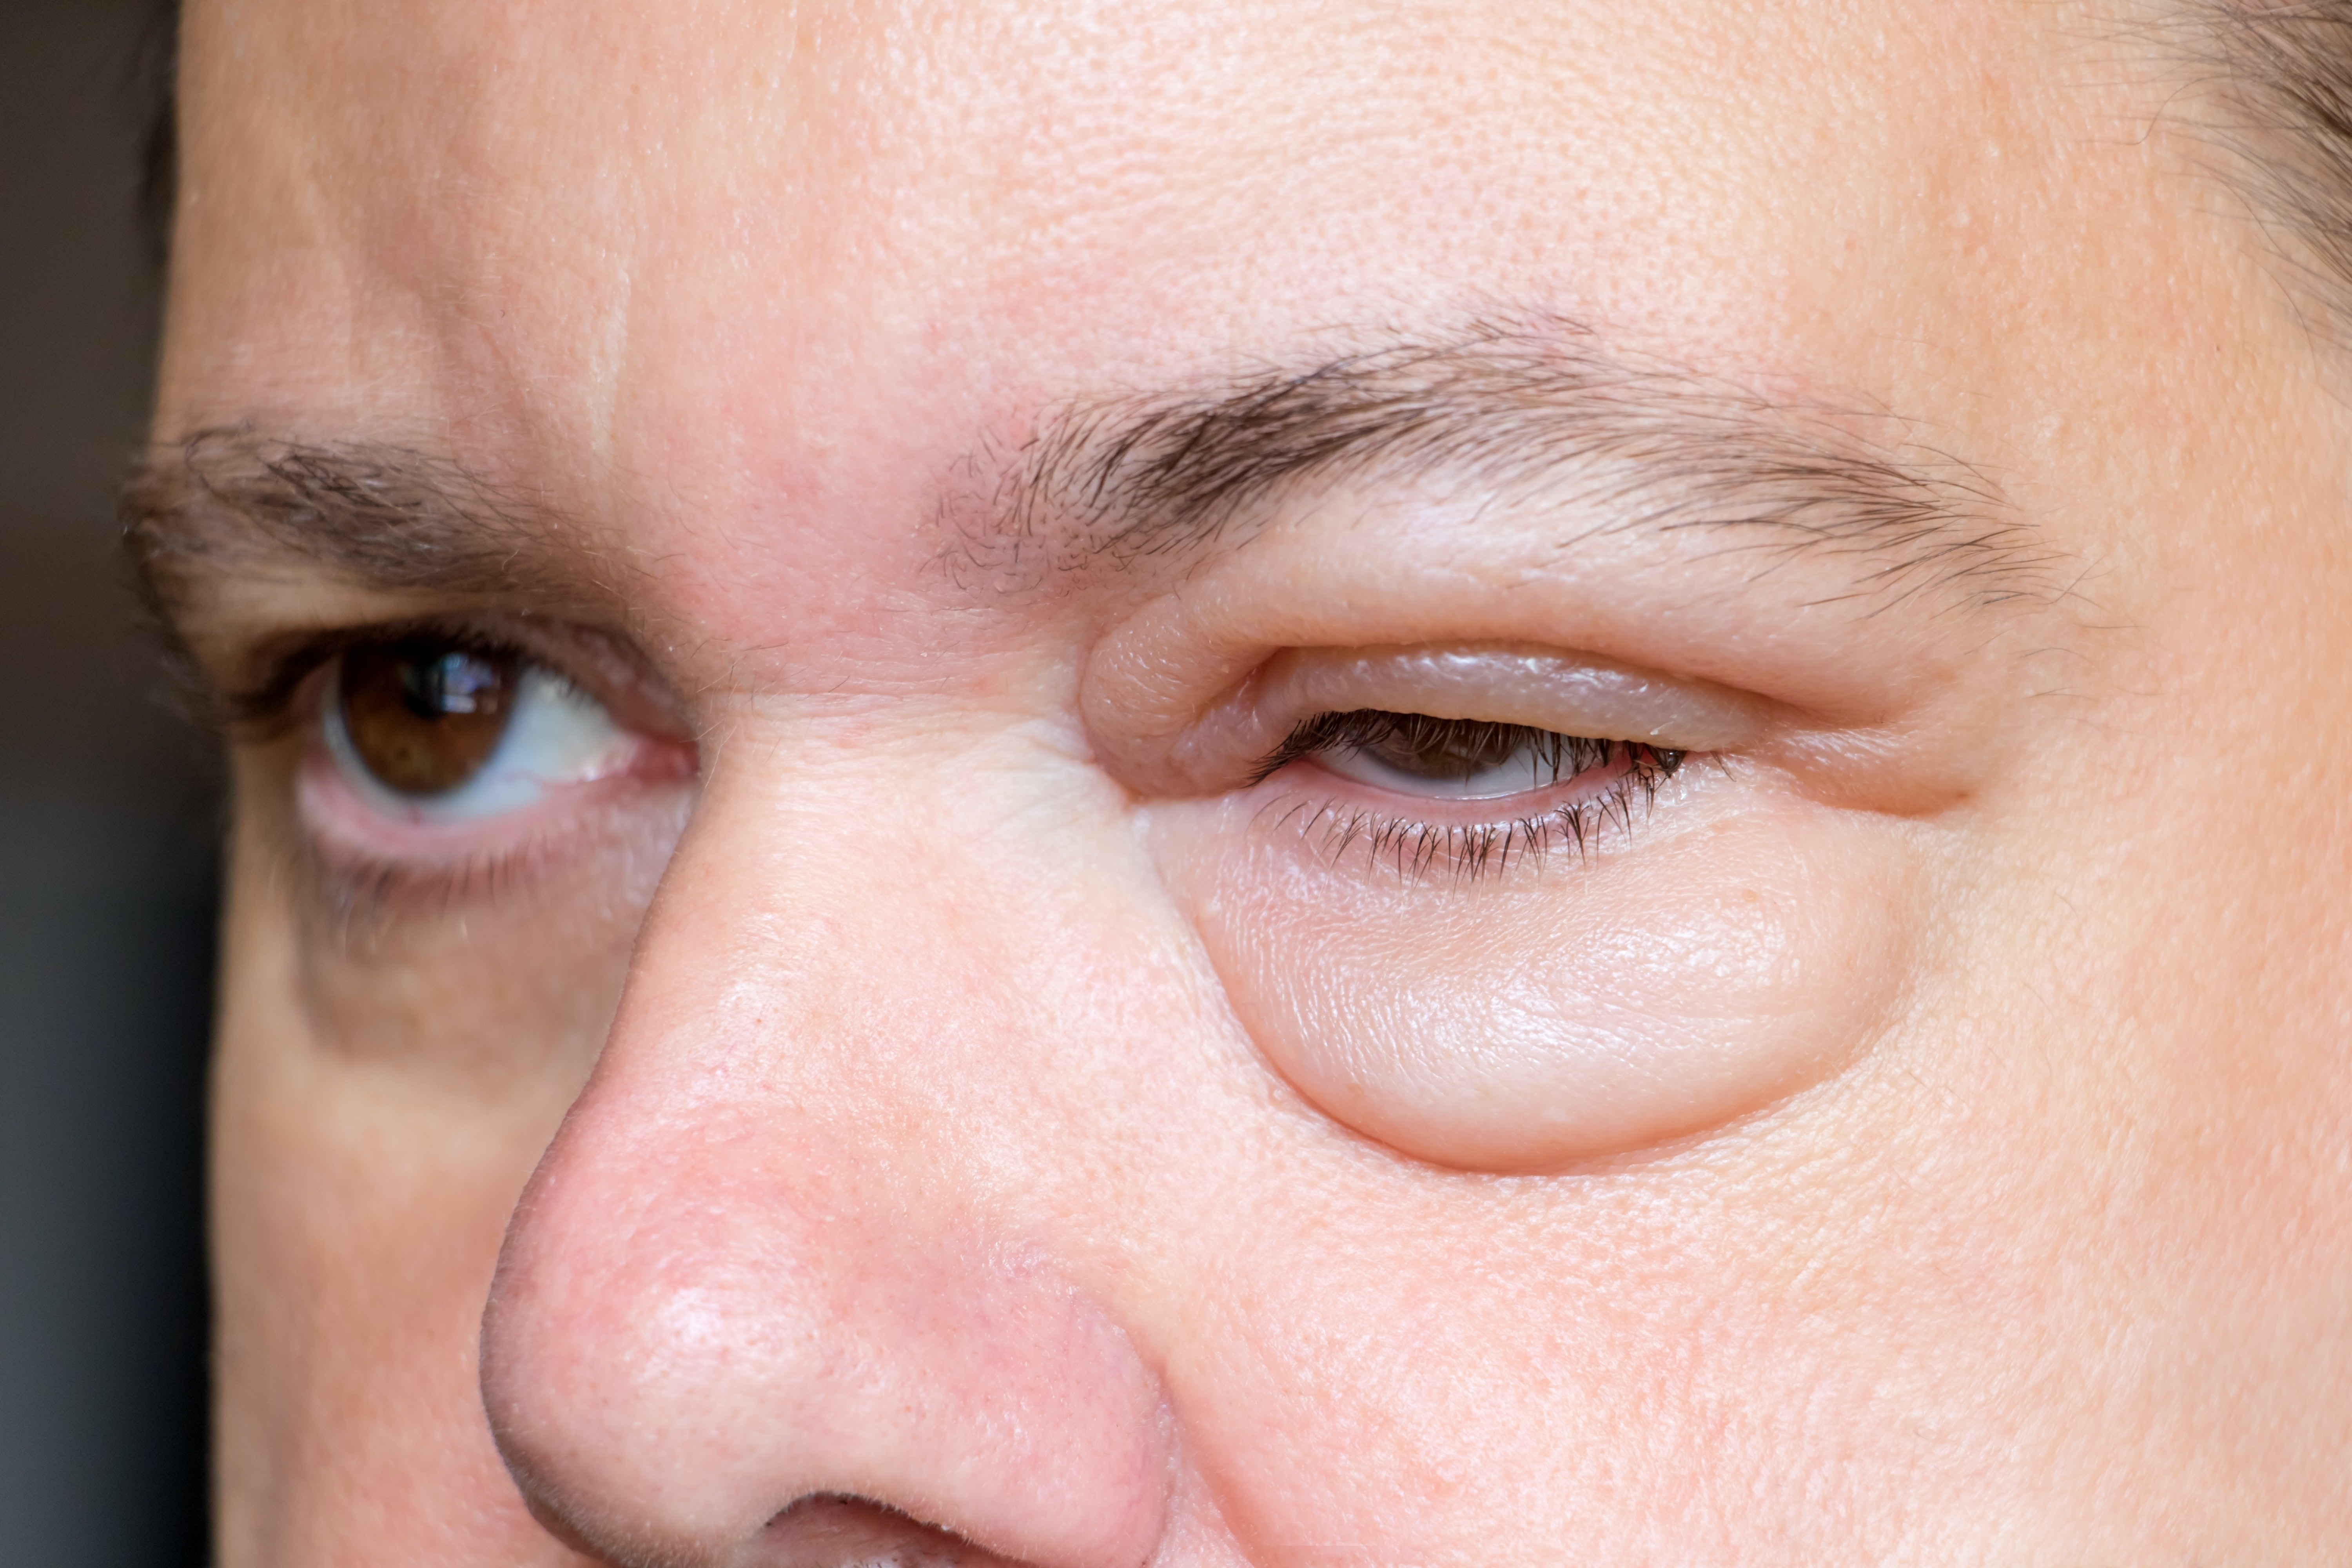 An image depicting a person suffering from swelling around the eye symptoms